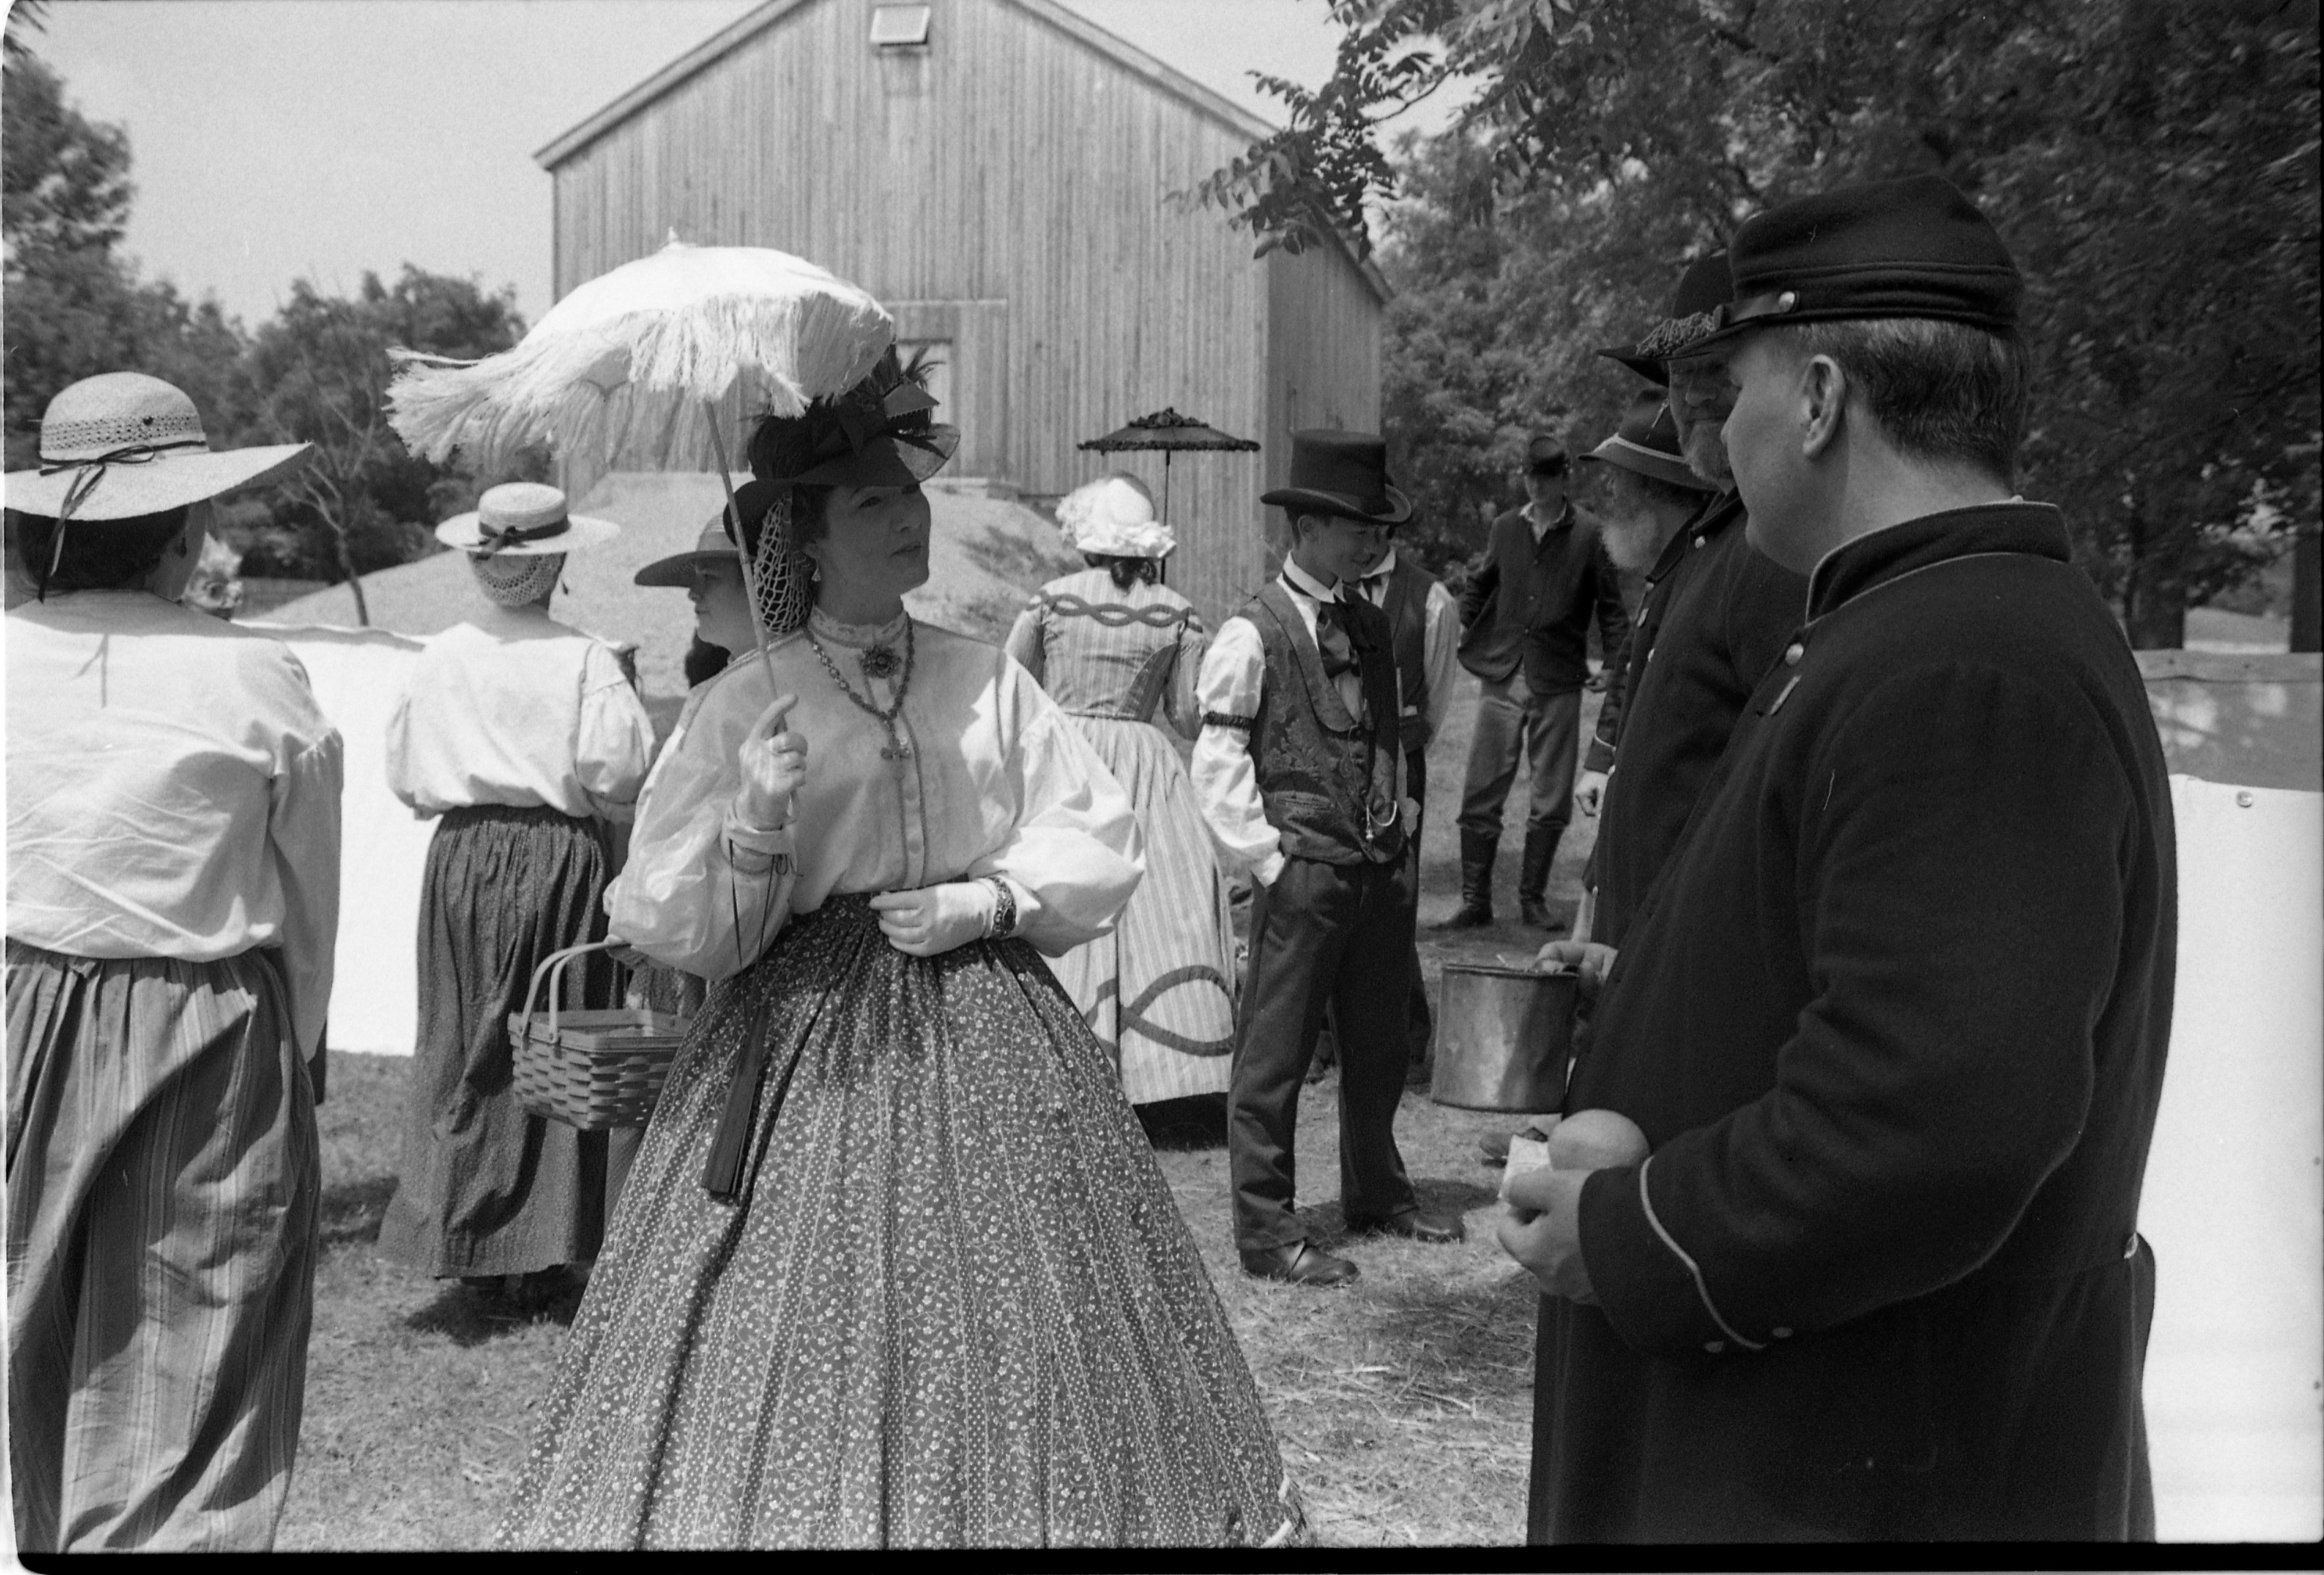 Ruth Ann Bell, Civilian Civil War Re-enactor, Visits Union Soldier Re-enactor, Mark Biolchino, At Cobblestone Farm, July 28, 1990 image